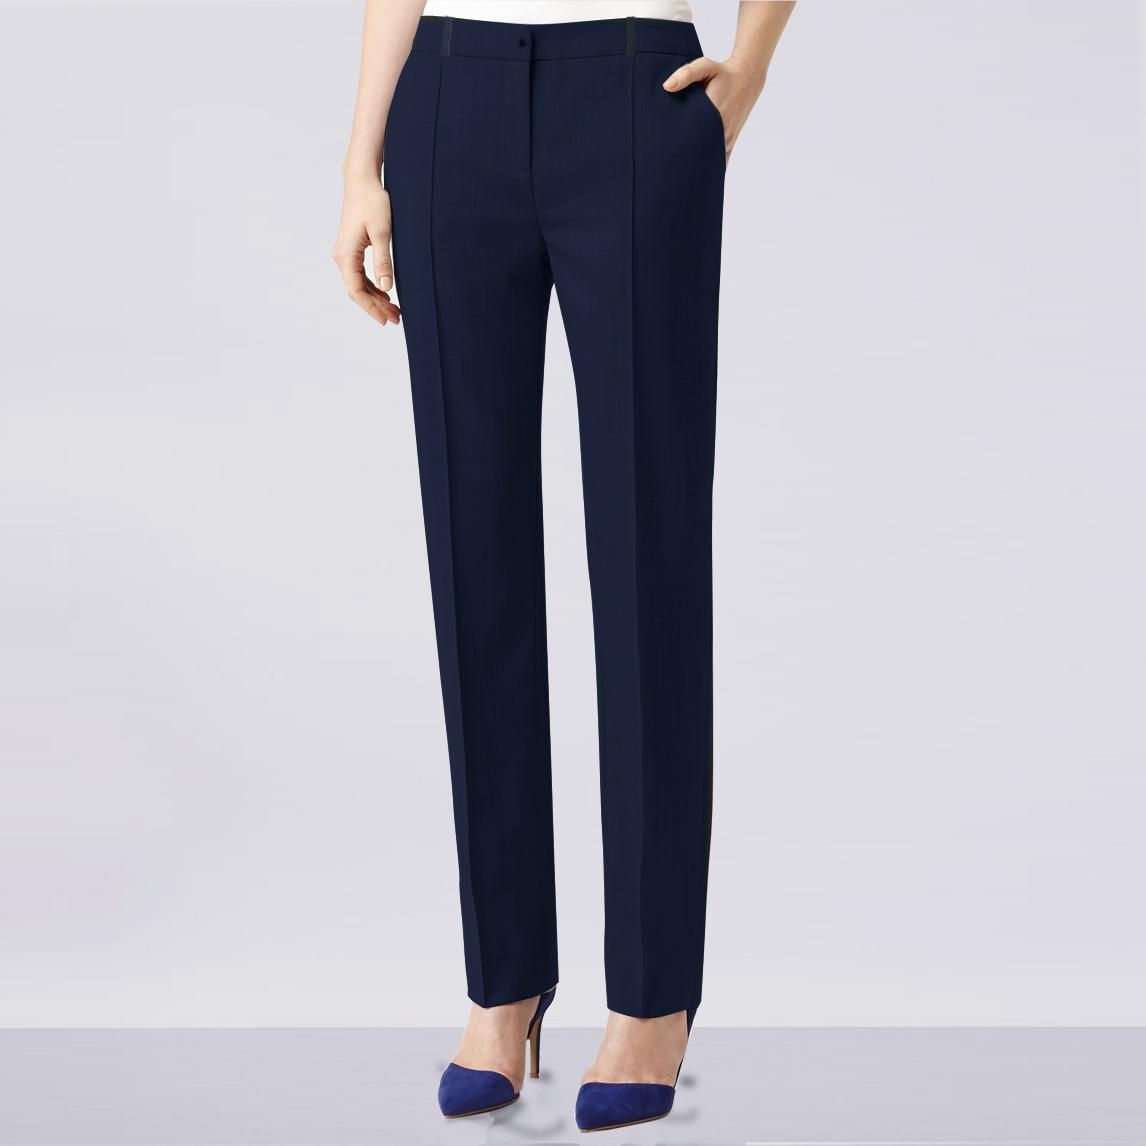 Quần T¢y C´ng Sá Ÿ Q02 Buy sell online Pants with cheap price #2: a43ab e8abef72a70c3971ab82